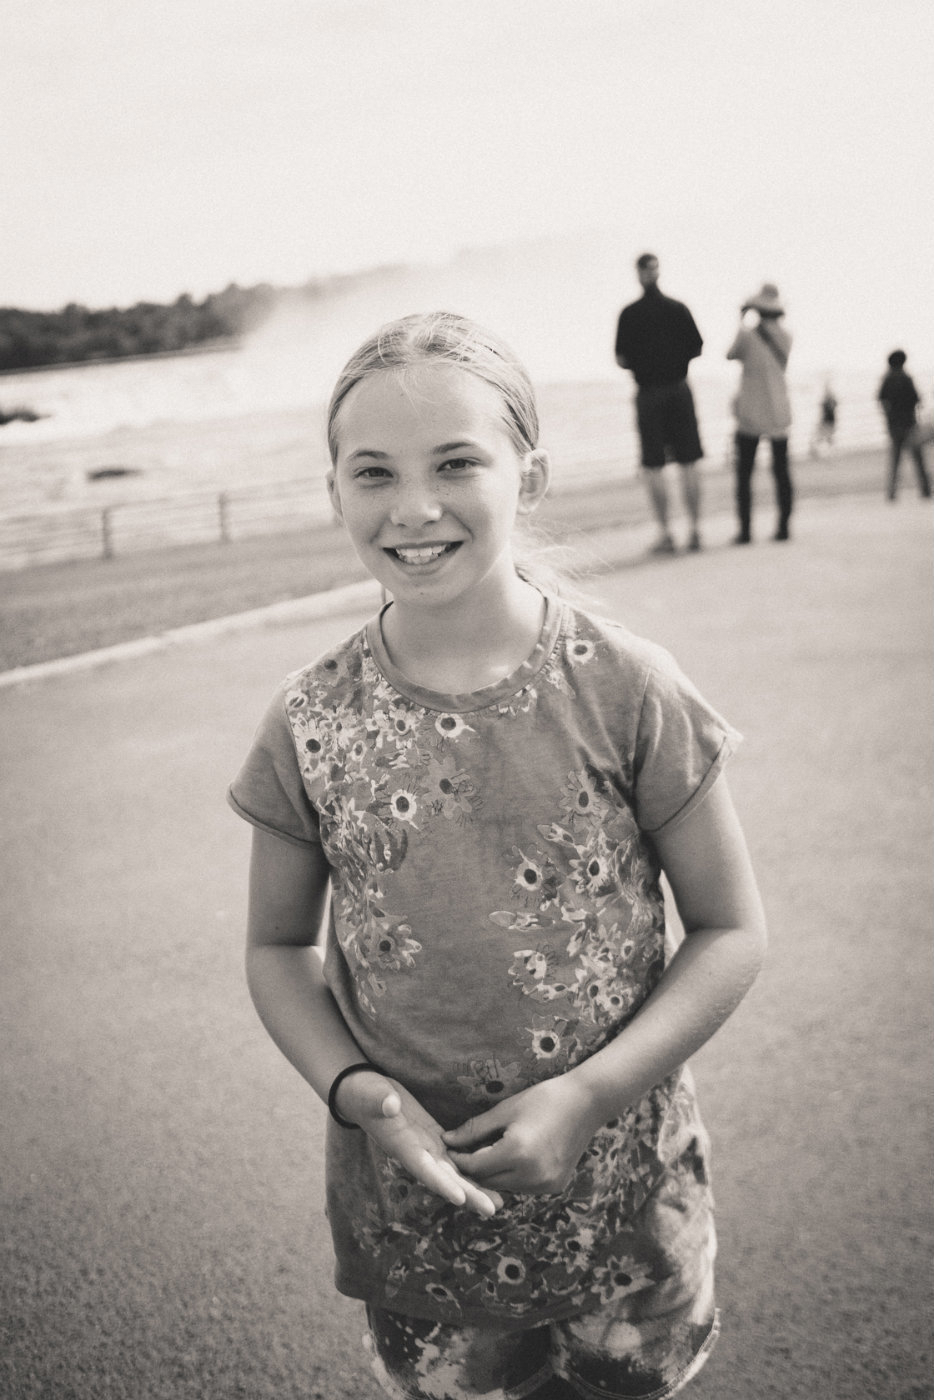 diblasio_photo_nyc_3977